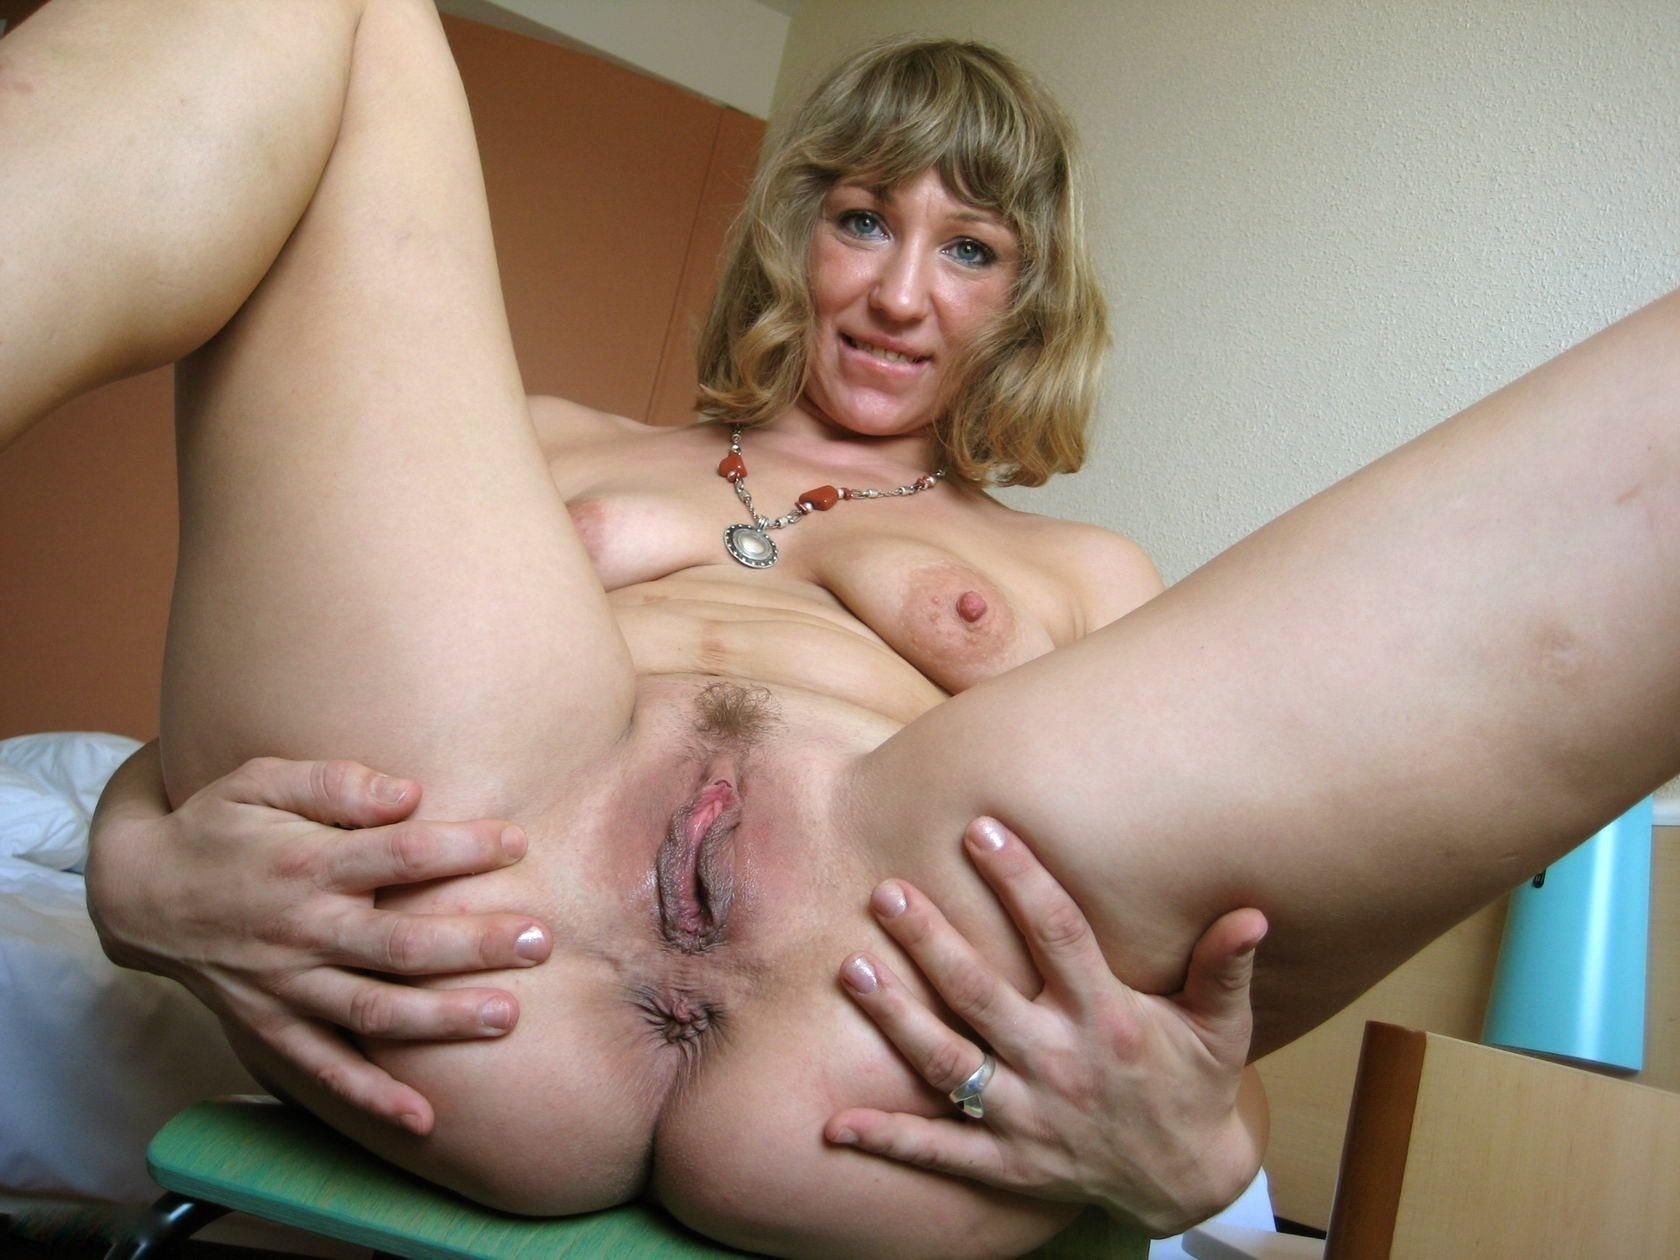 Mom shaved pics, hot cougar moms porn galleries